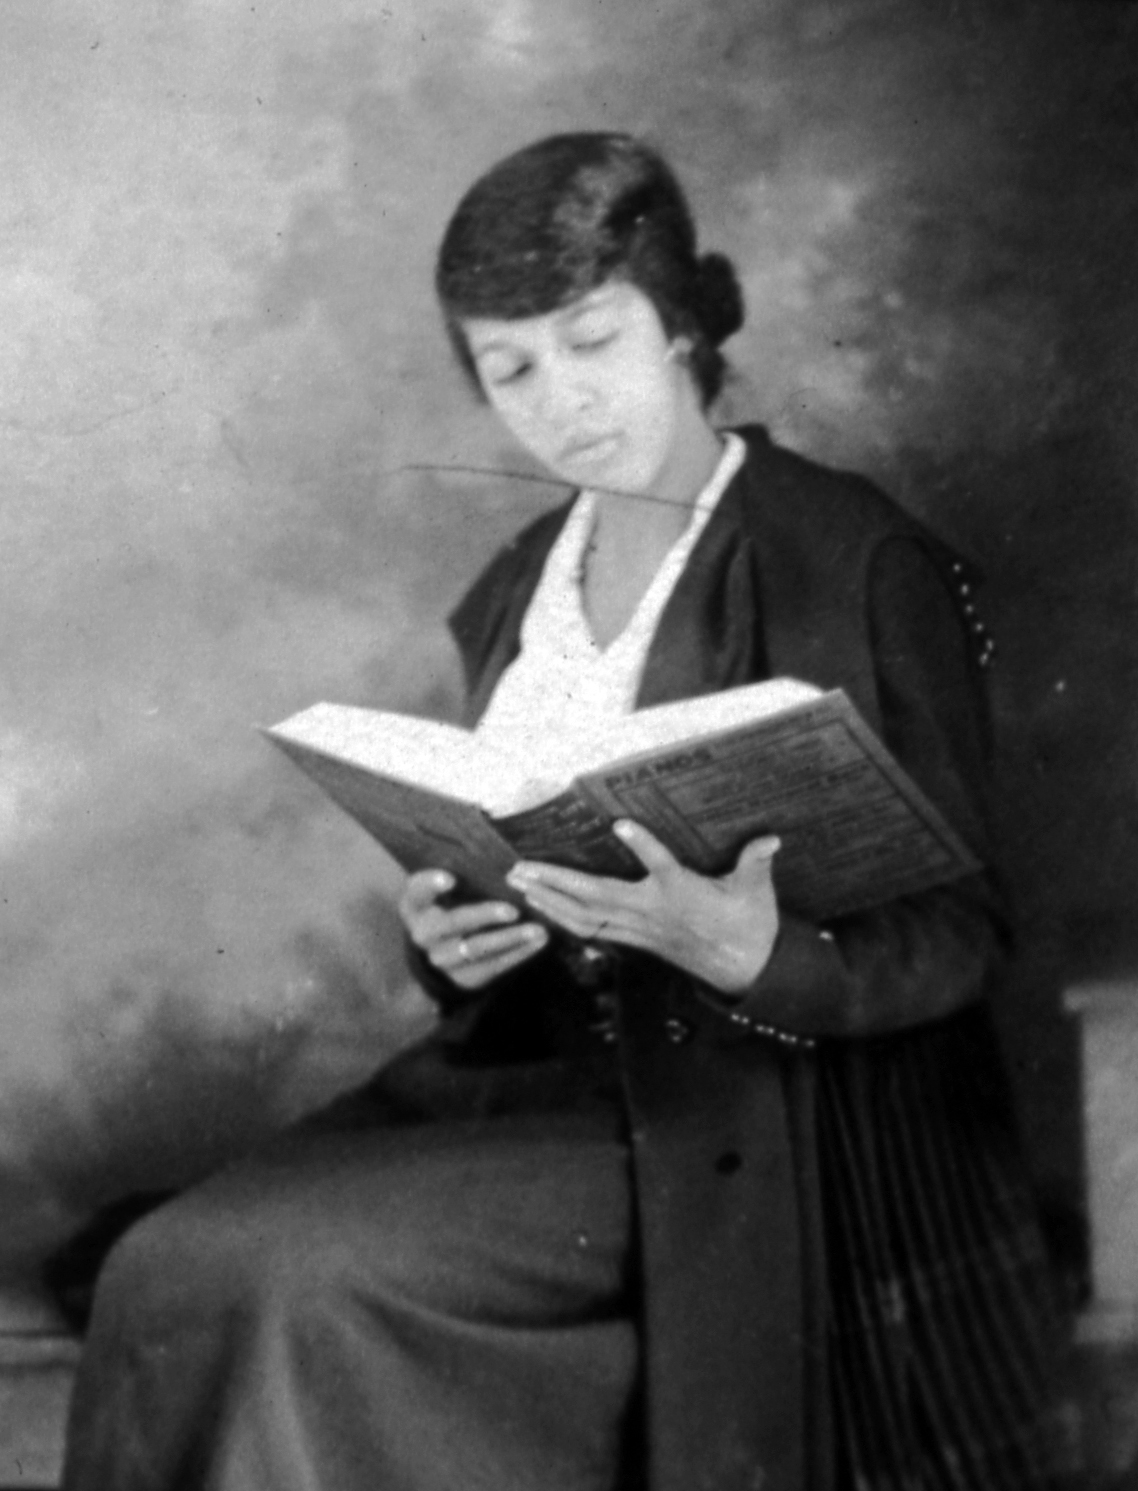 Modjeska Simkins reading